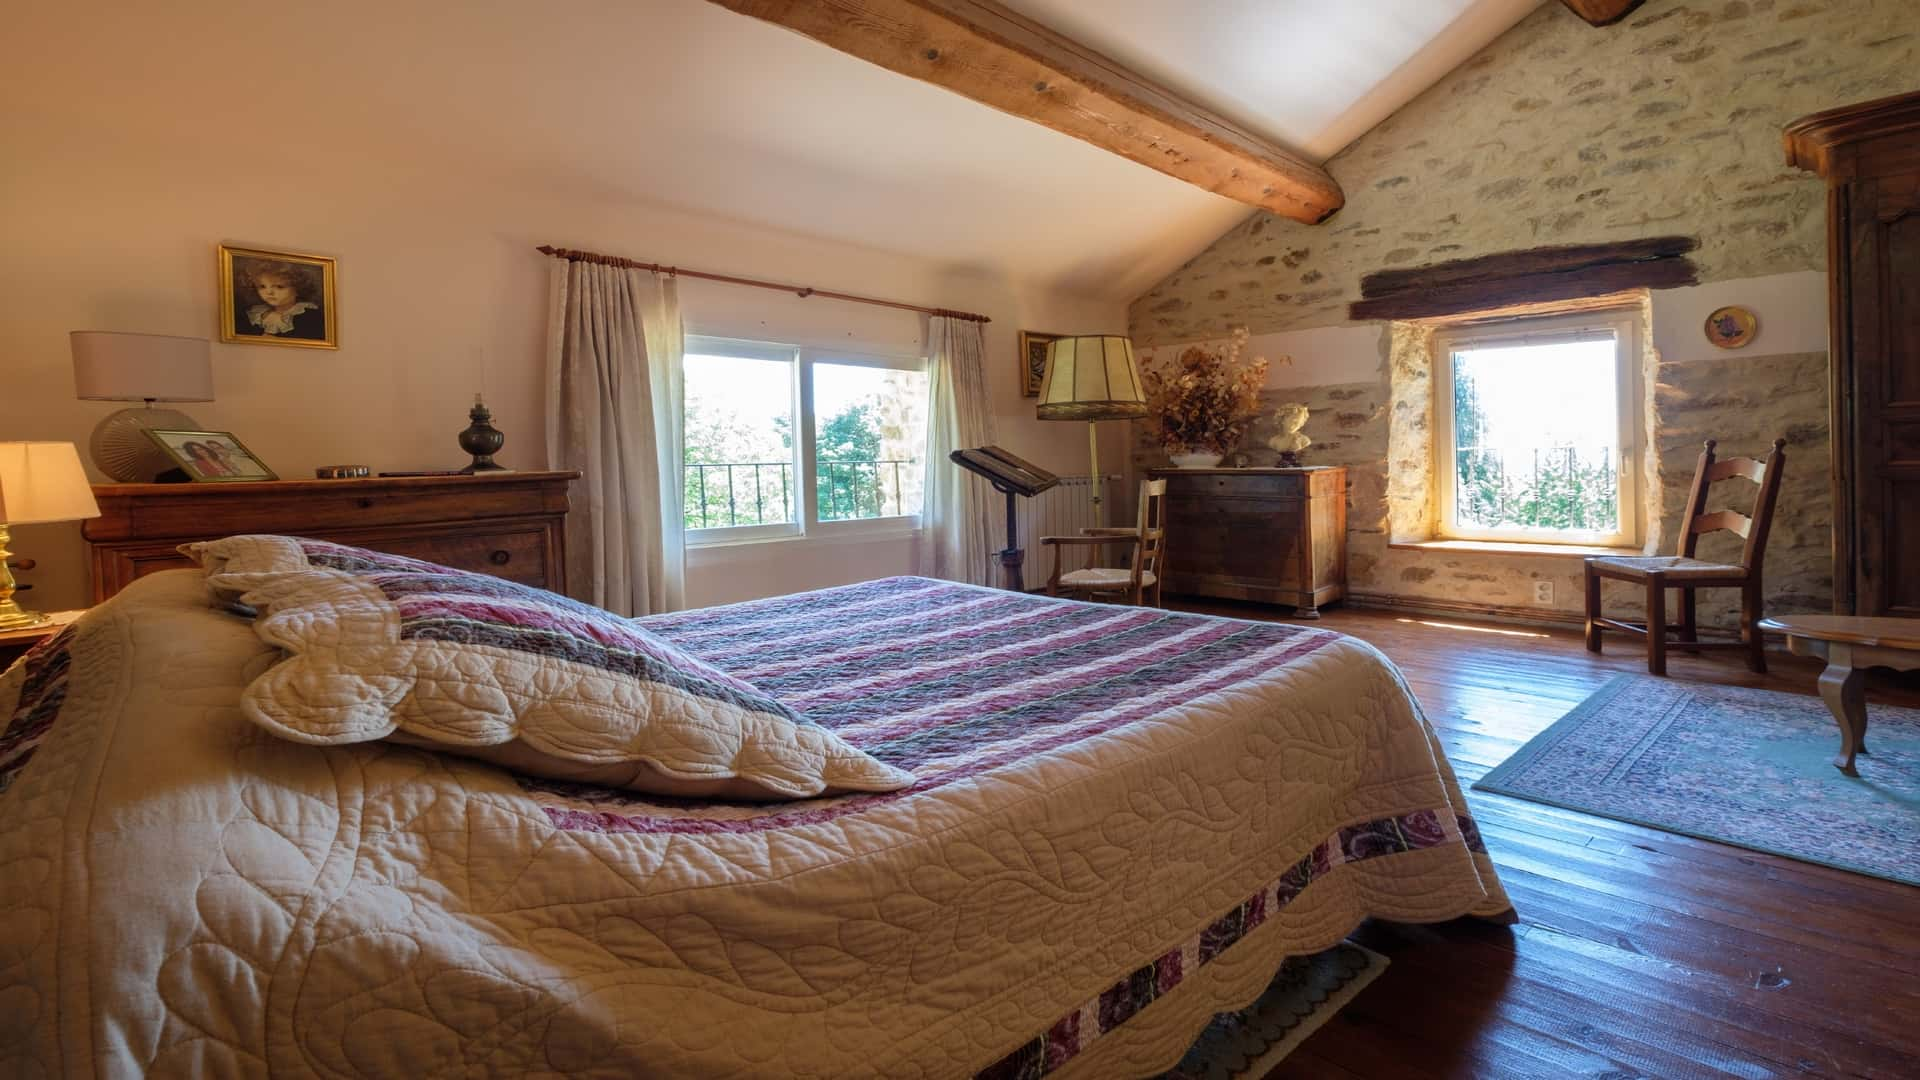 bed and breakfast domaine de malouziès - character gites with swimming pool and charming bed and brekfasts near Carcassonne